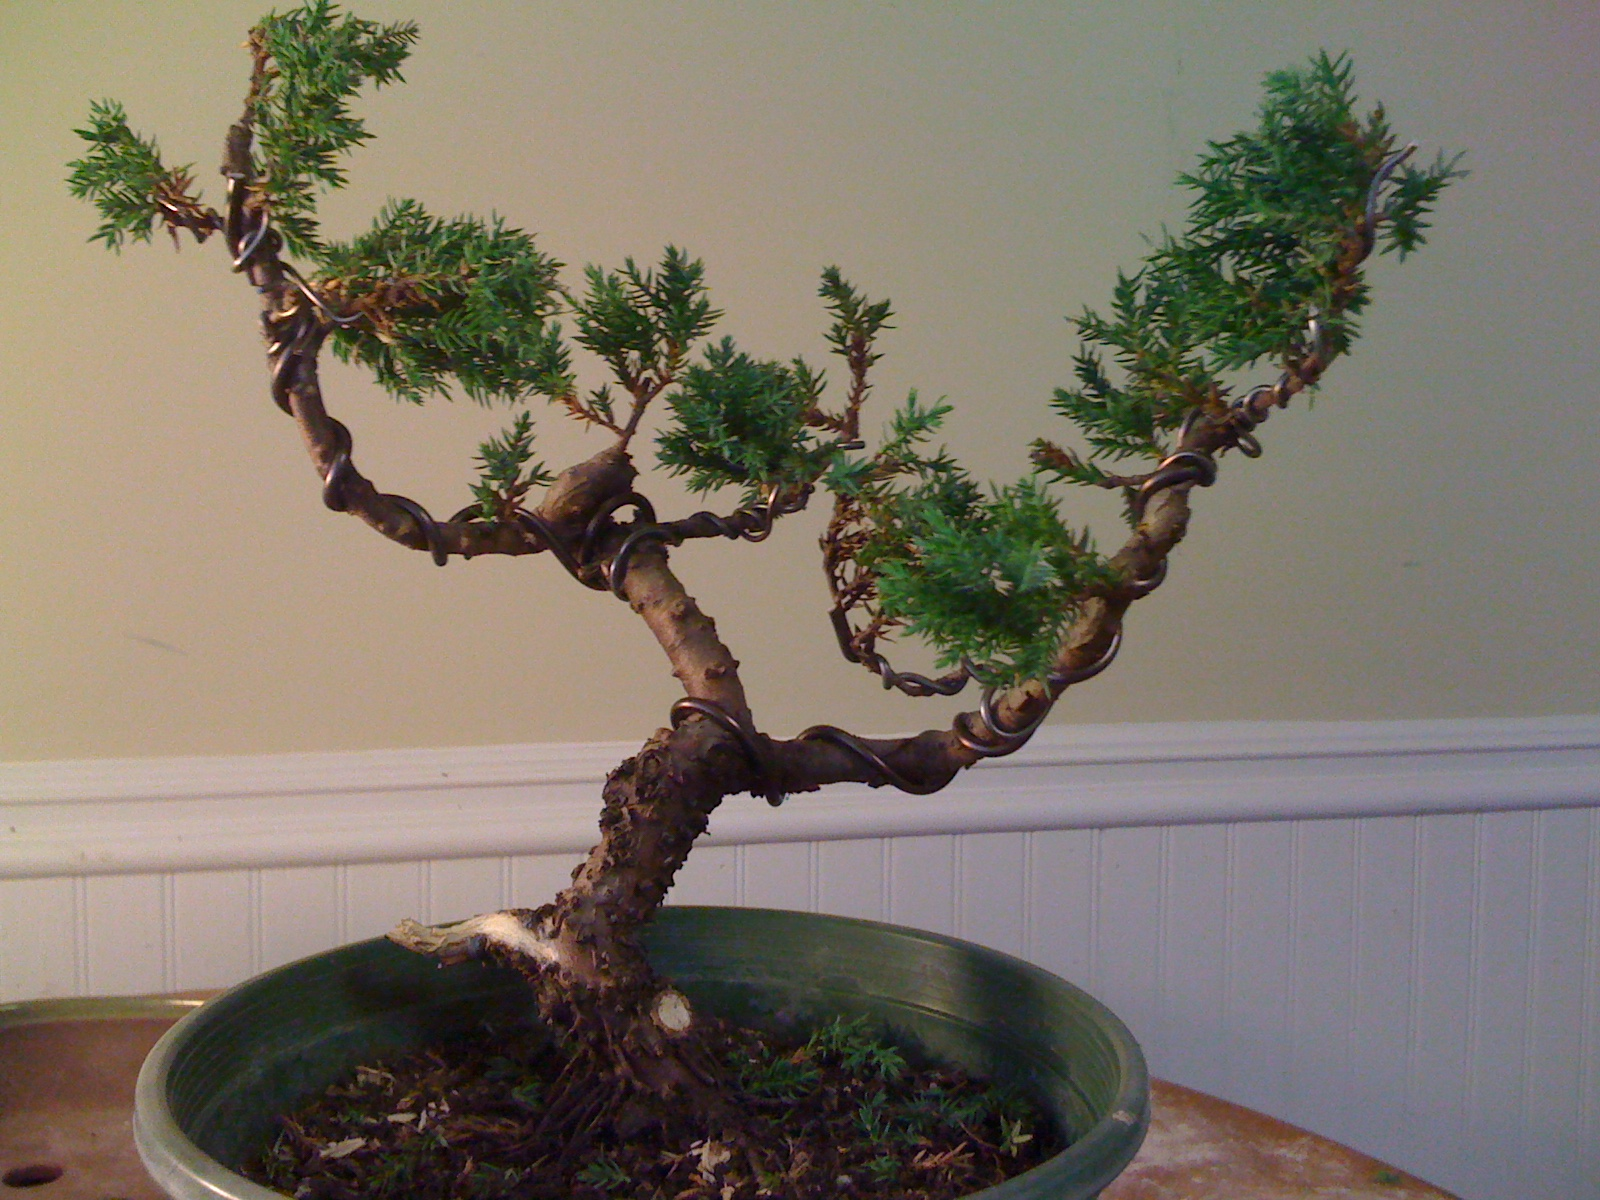 Wiring Juniper Bonsai Tree Daily Electronical Diagram For Beginners 15 Modern Ideas Rh Amadofutebolclube Blogspot Com Types Of Trees